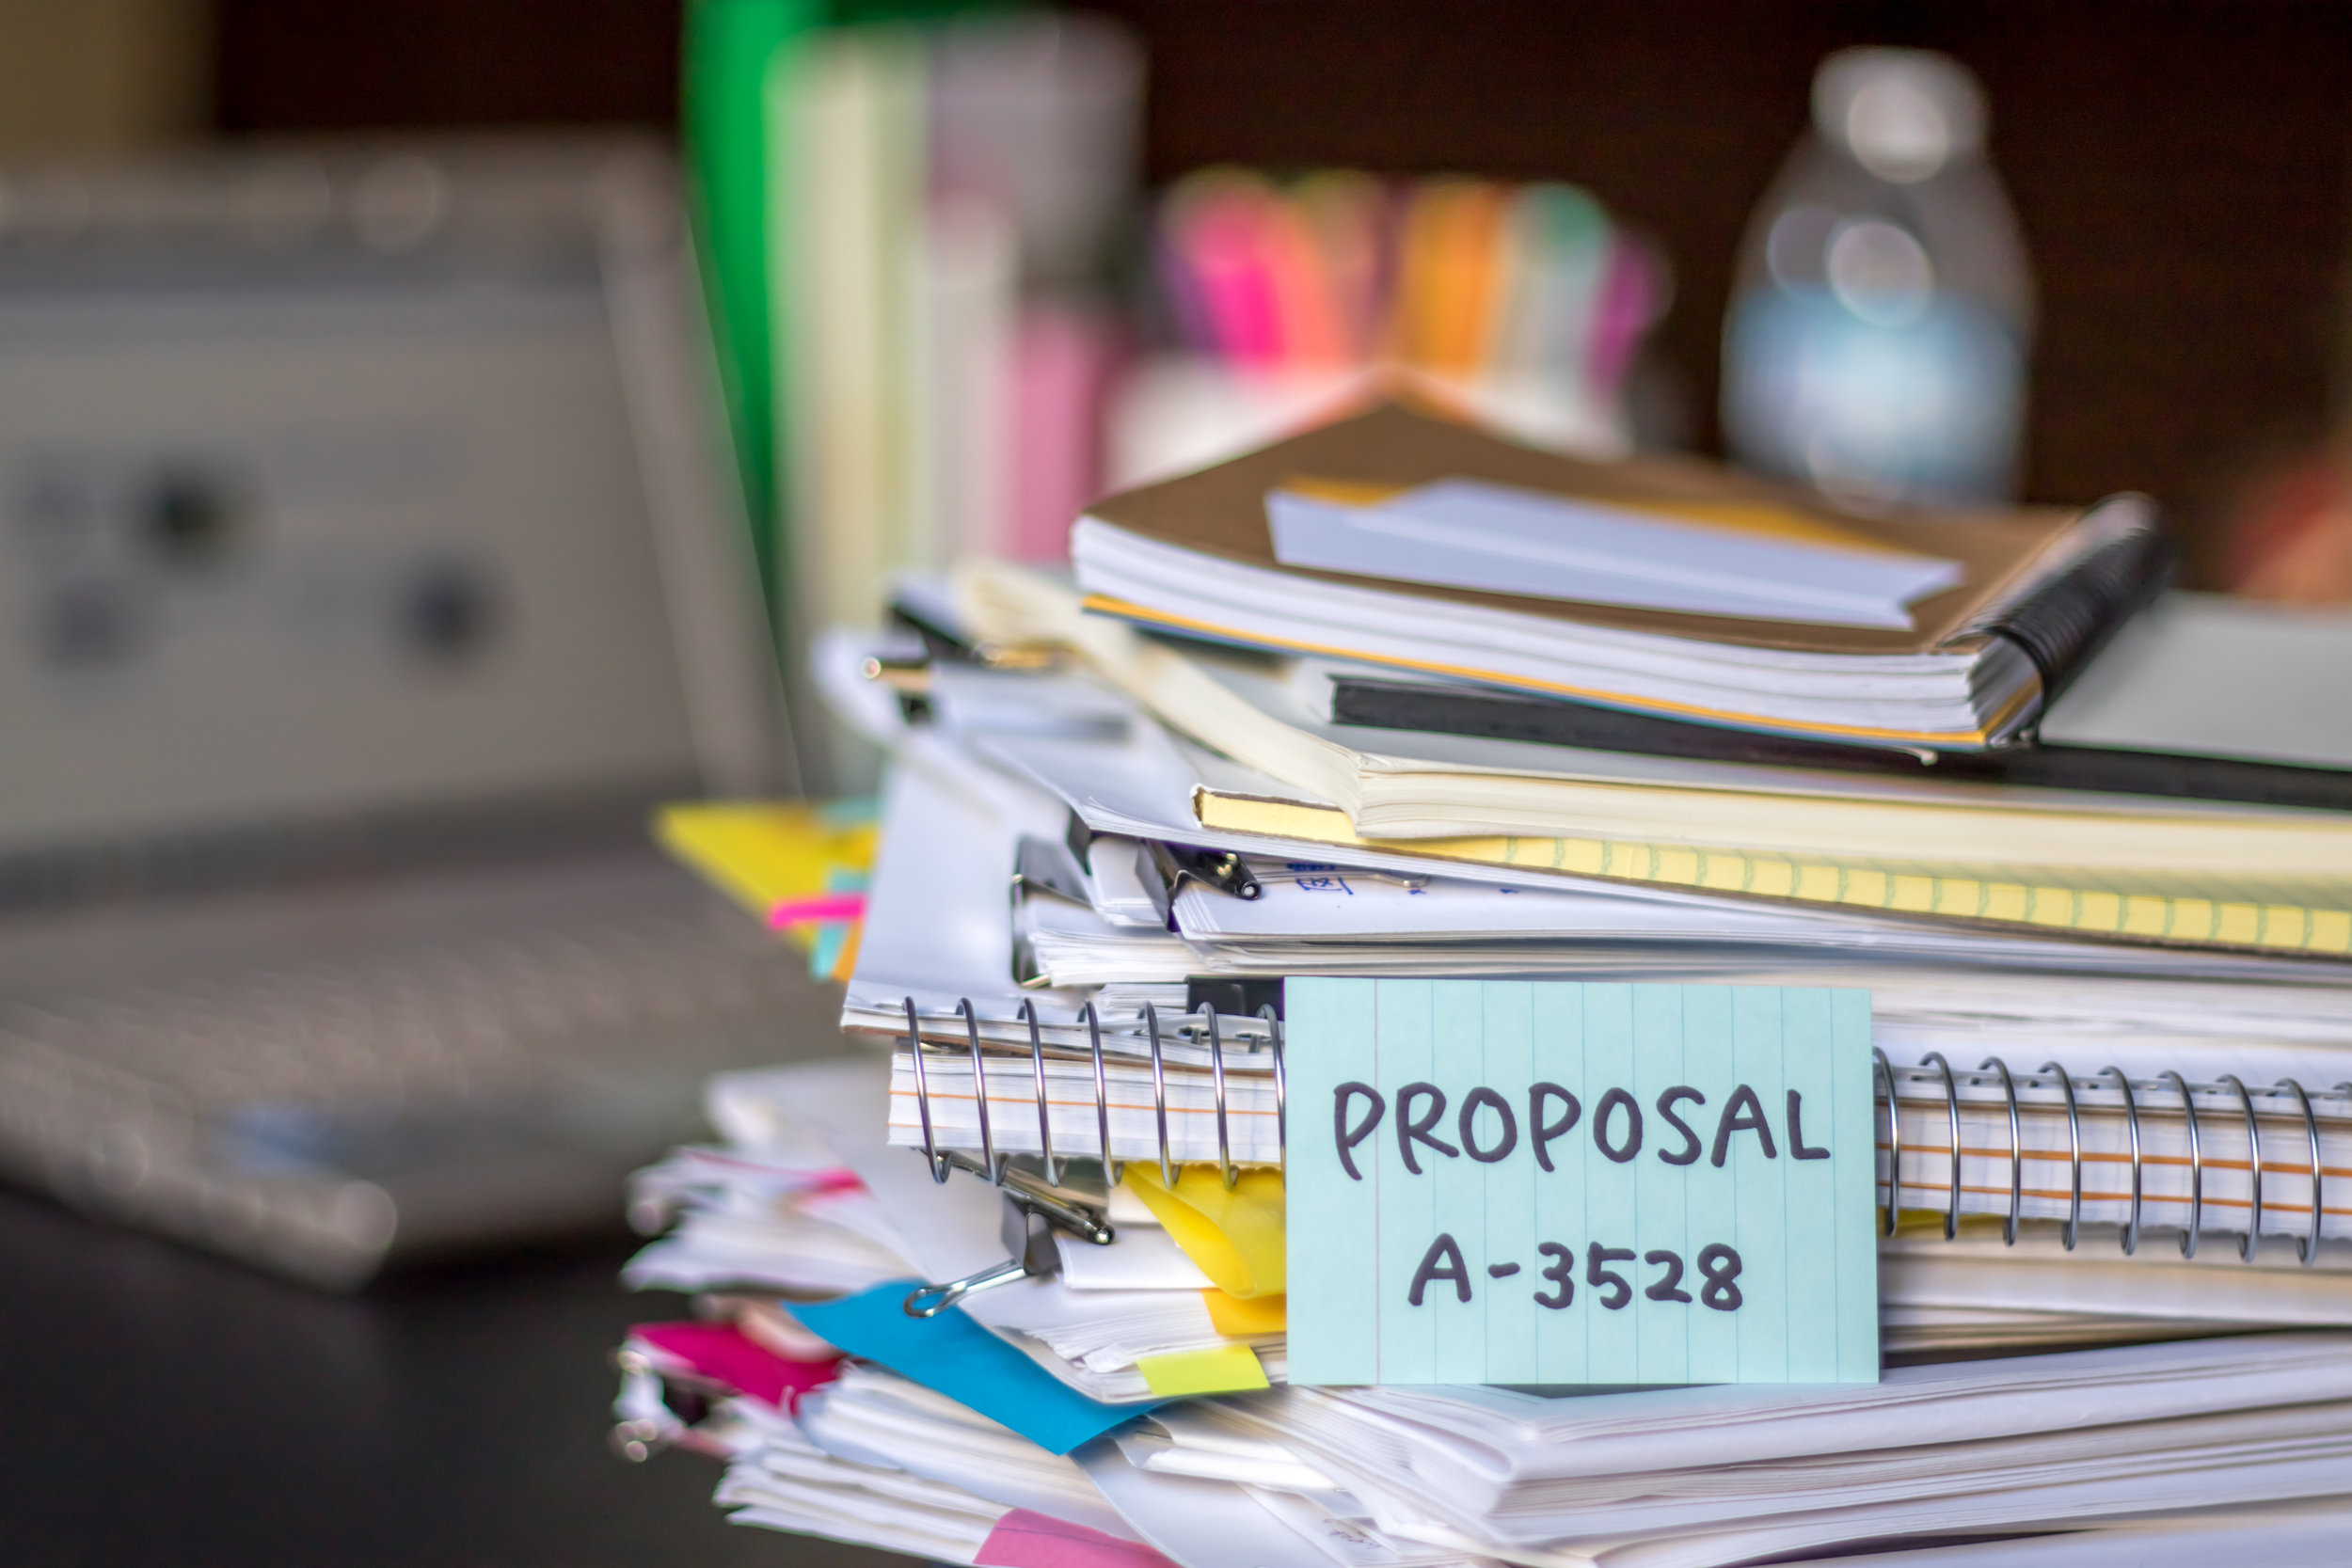 Proposal Management - Anthology offers comprehensive proposal management services including planning, team leadership, strategy, writing, layout and design, quality control, production, and presentation support.